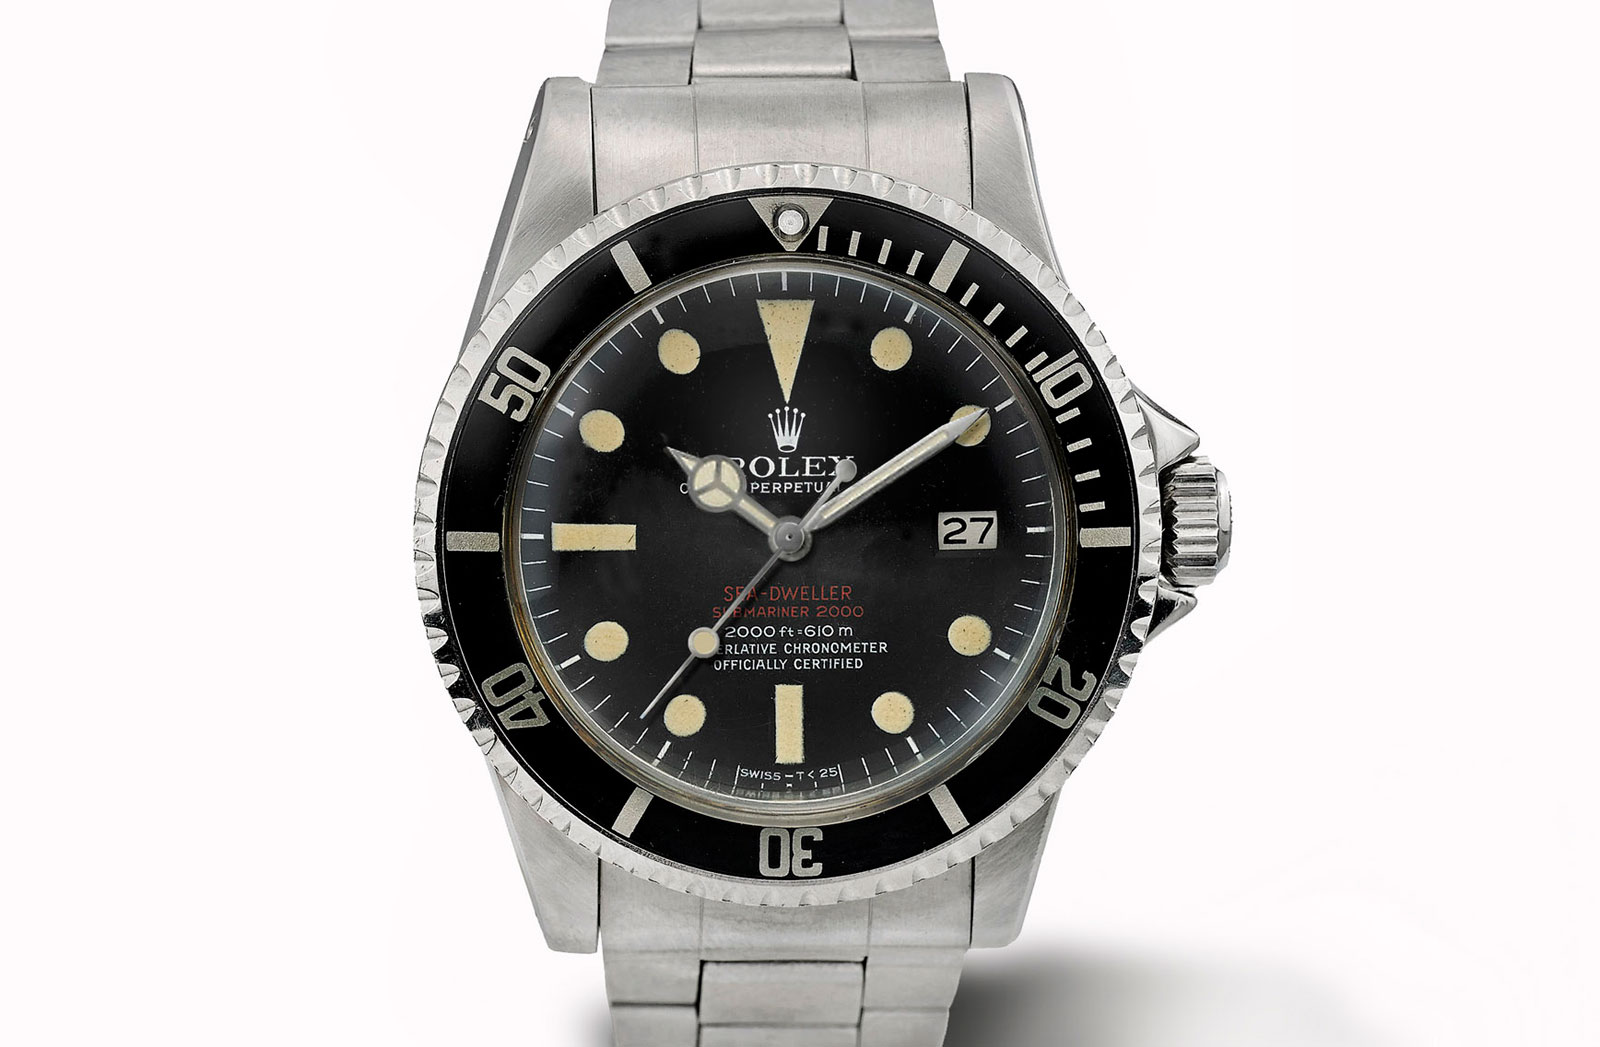 Rolex Sea-Dweller 1665 Mark IV